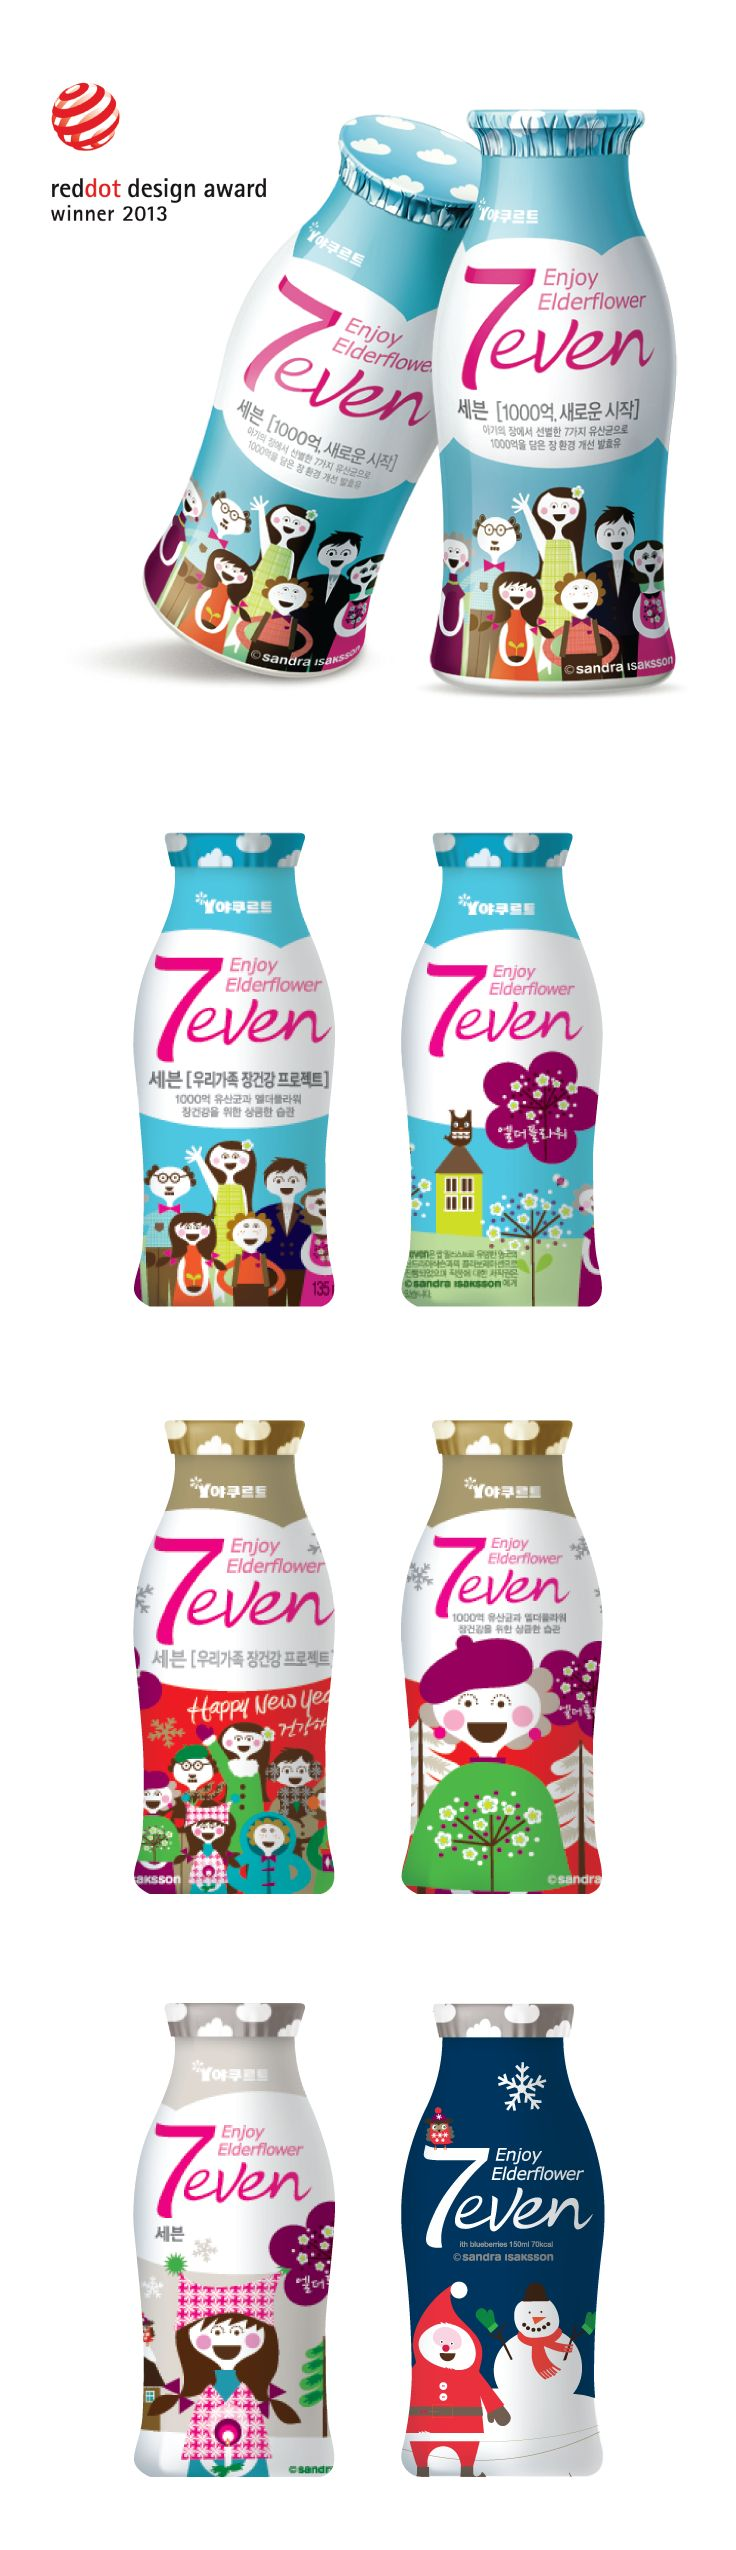 Our award winning project Yakult-7even, with a brand idea 'The Little Cheers'.7even achieved a big sales hit over 100 billion won in the first year of its launch, S.Korea. PD